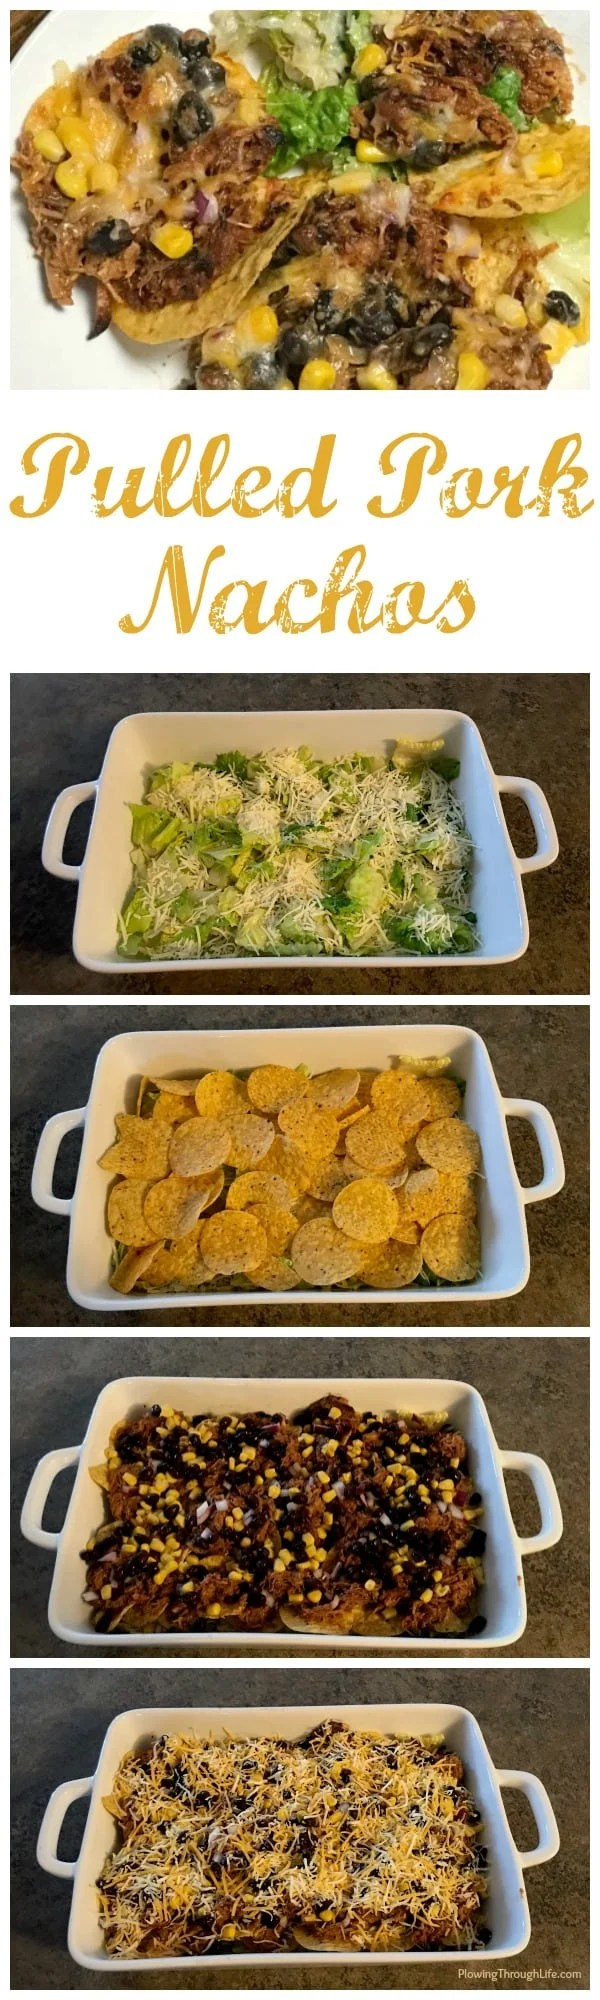 Do you need an easy family meal that can be made in 15 minutes? This easy pulled pork nacho casserole style dish tastes great, includes a variety of food groups and is very easy to put together. Even my picky eater ate this meal!